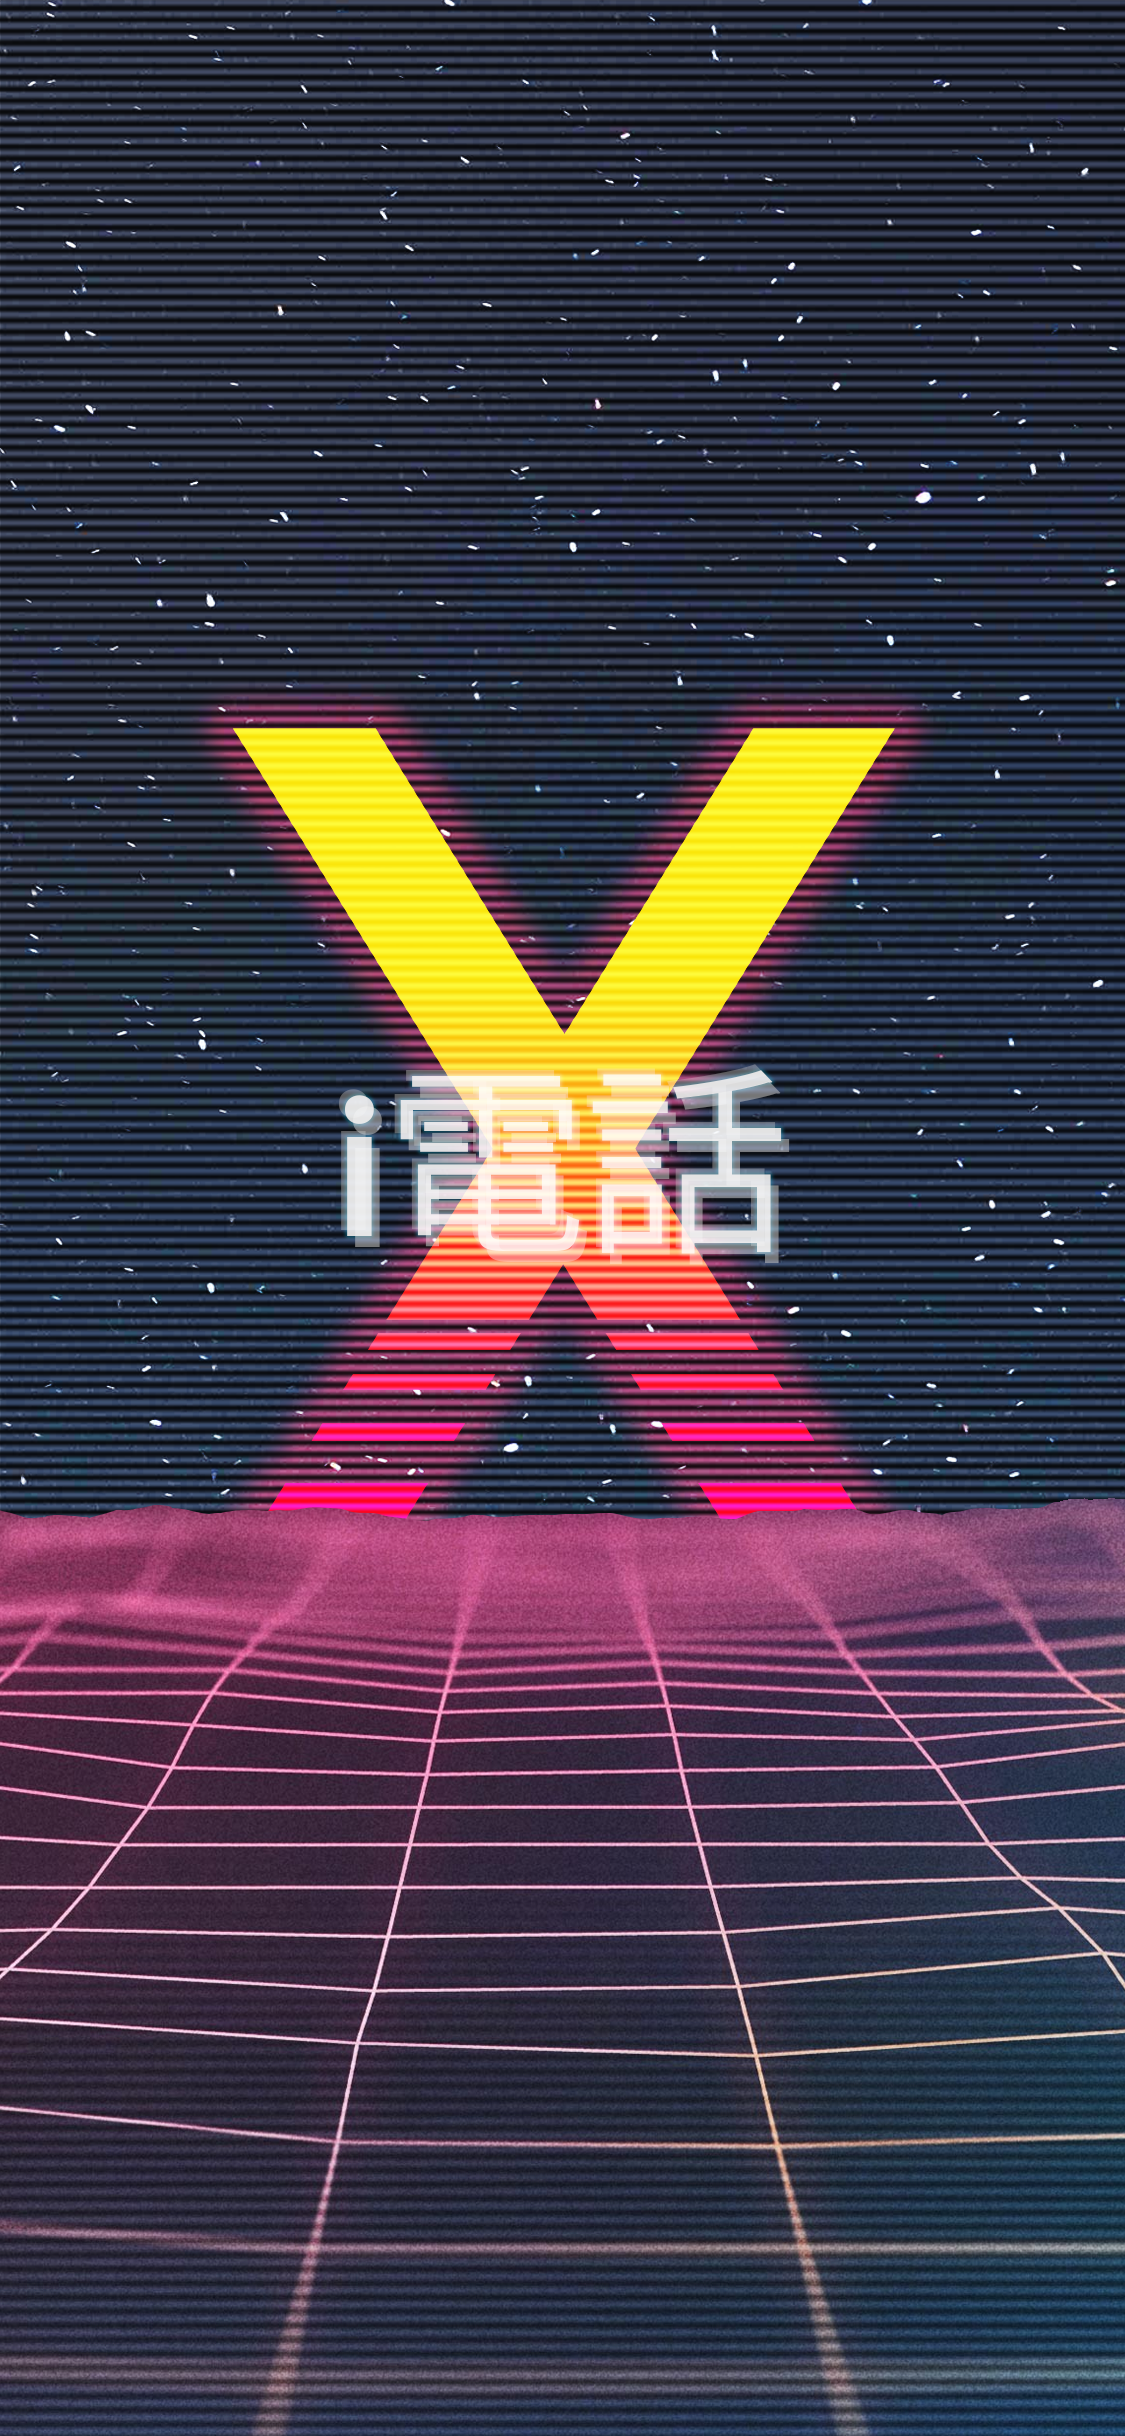 Aesthetic Iphone X Wallpaper Tumblr Woowpaper